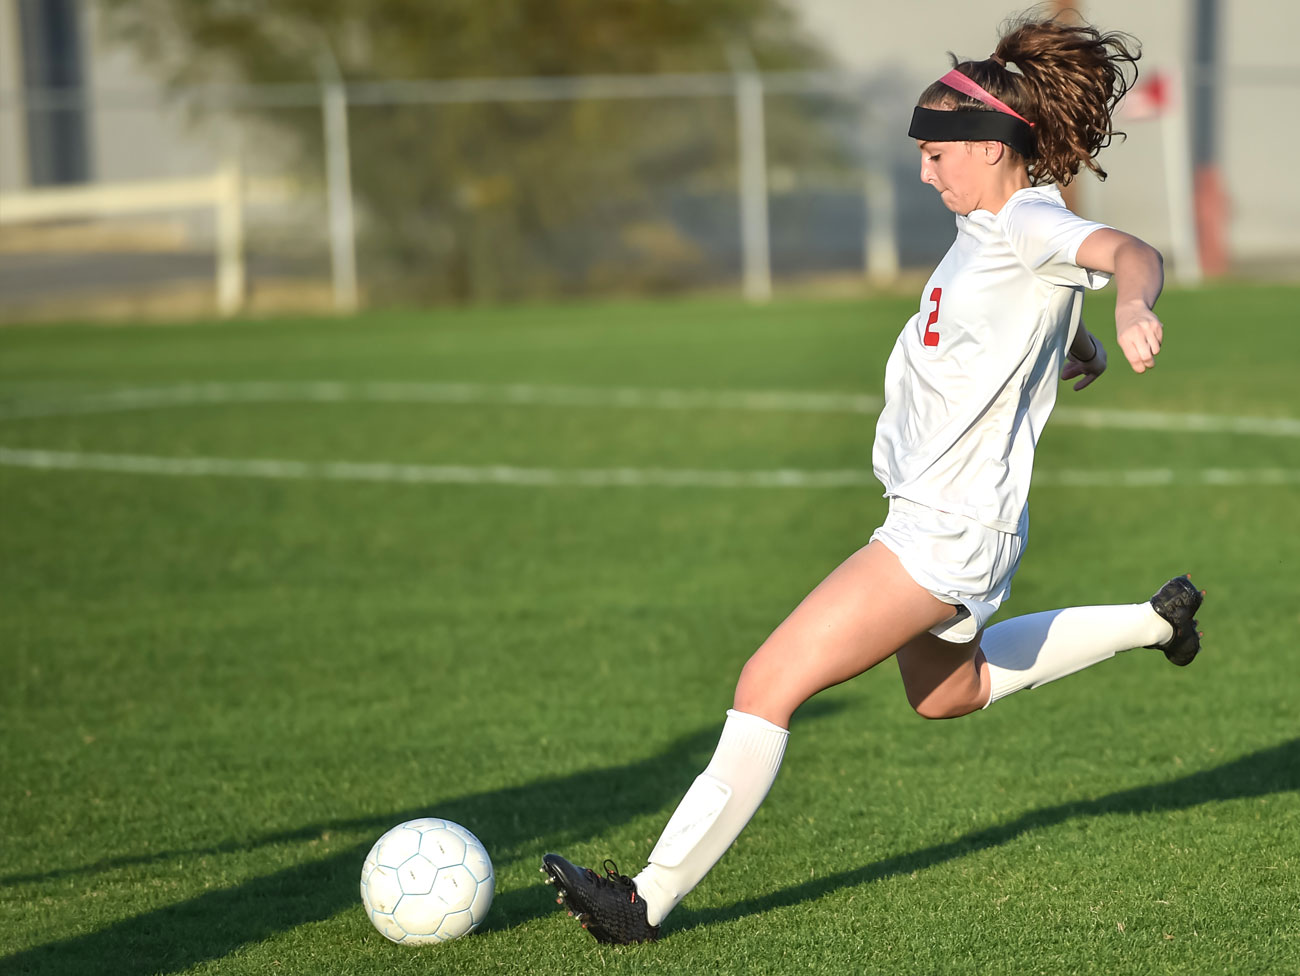 Stretch goals: Preventing ACL injury for teen athletes